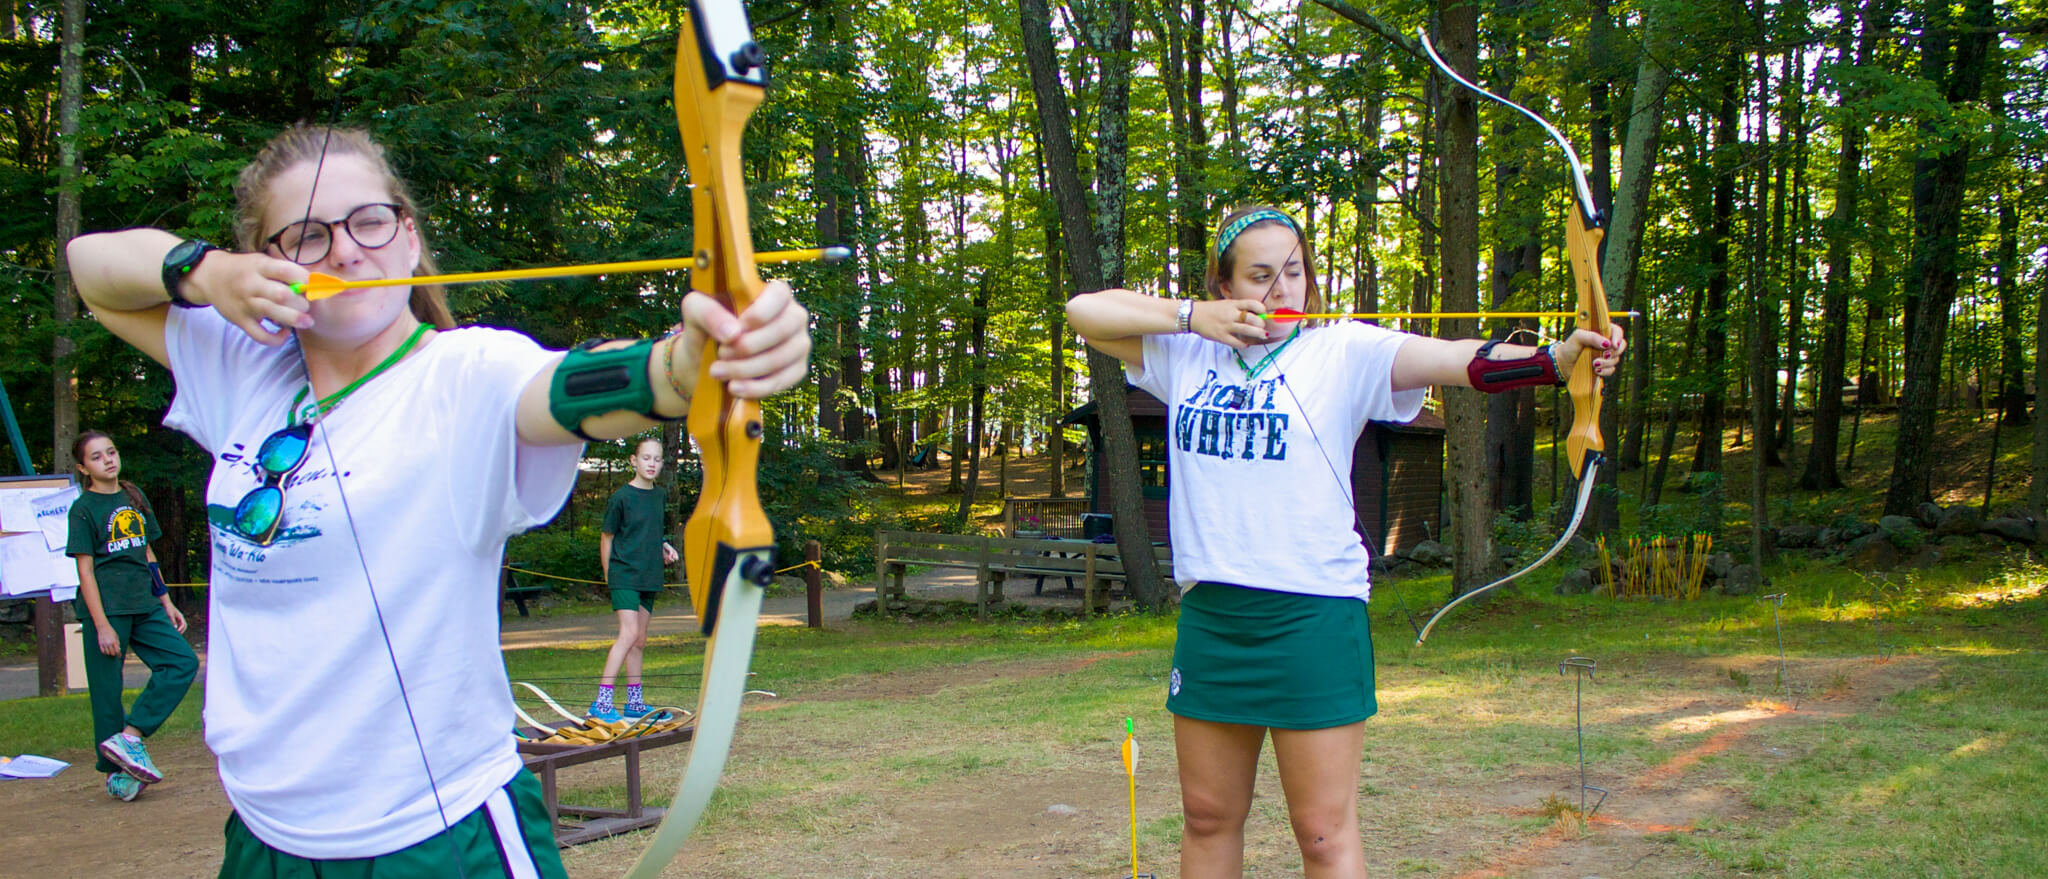 archery jobs at summer camp